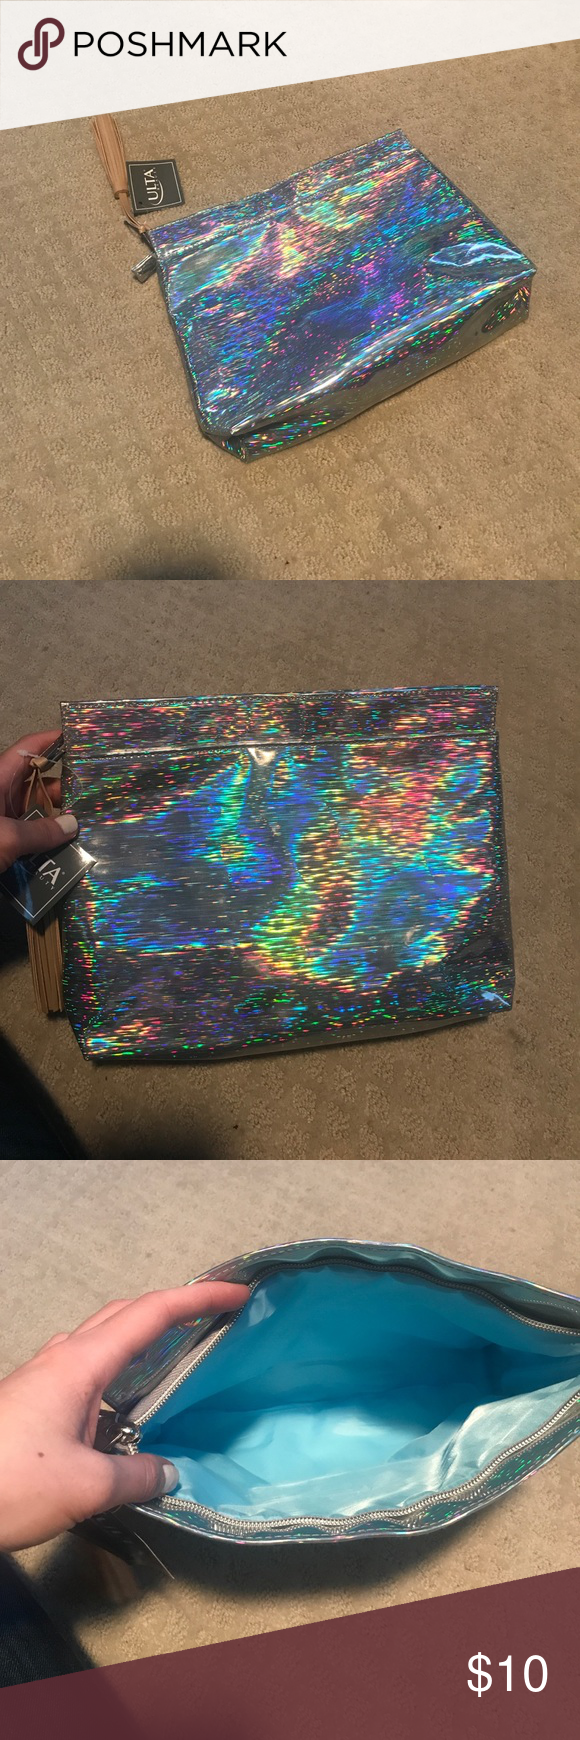 NWT holographic makeup bag Brand new holographic makeup